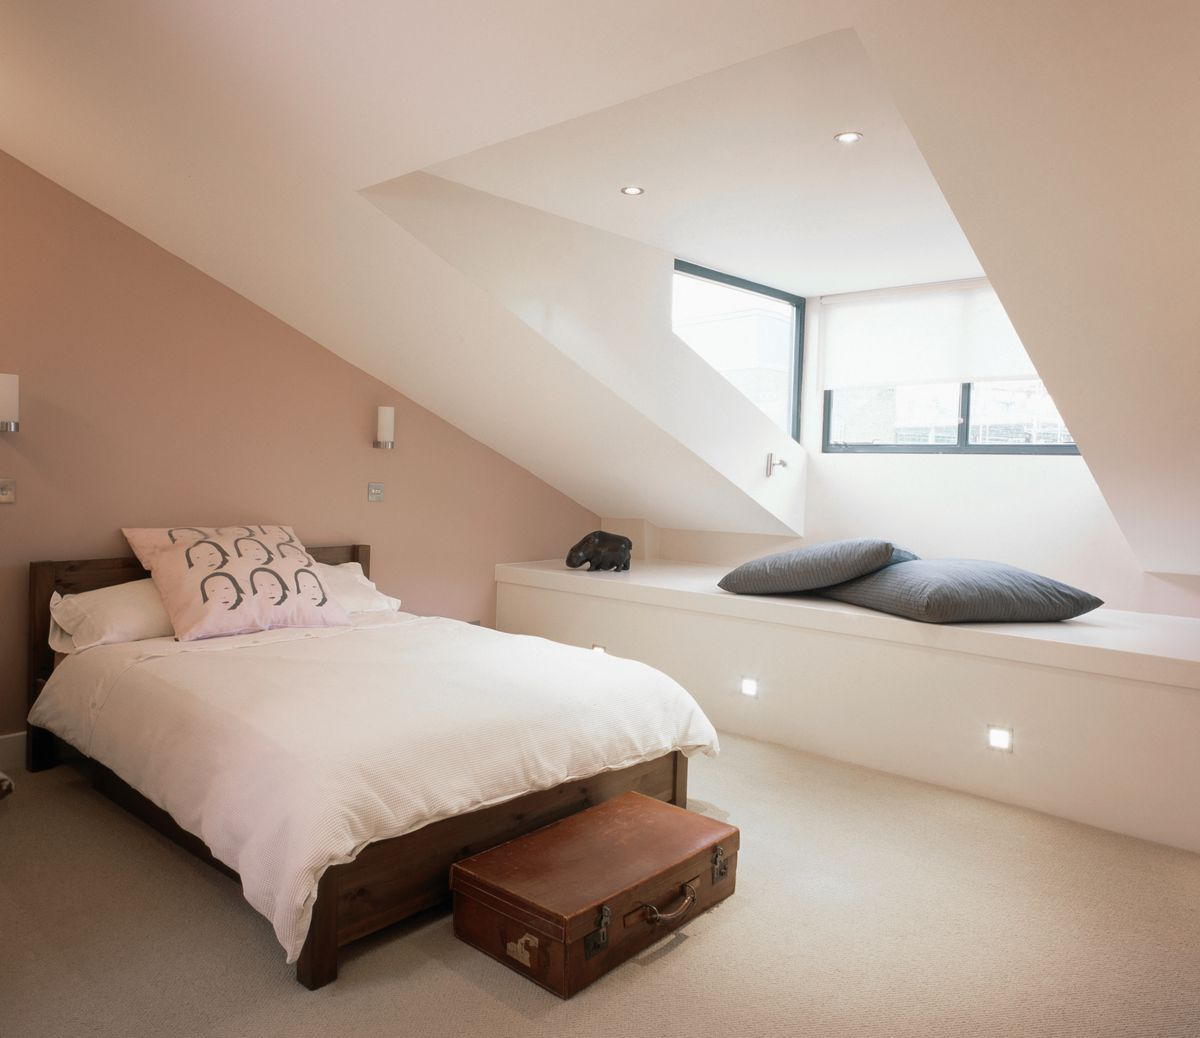 Attic bedroom with recessed lighting.